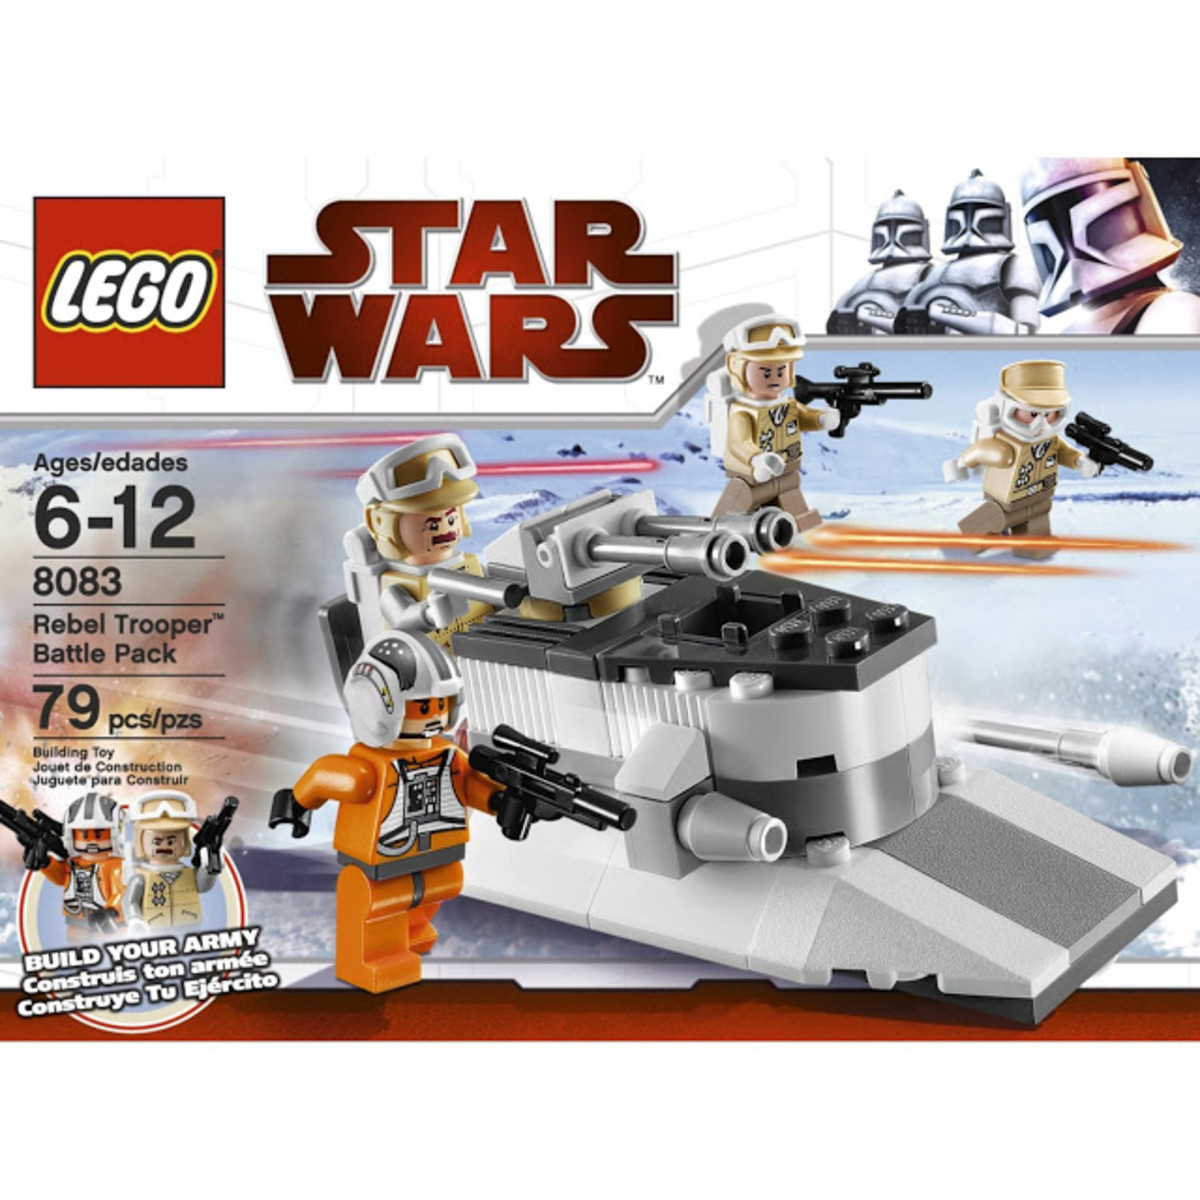 LEGO Star Wars Rebel Trooper Battle Pack 8083 Box